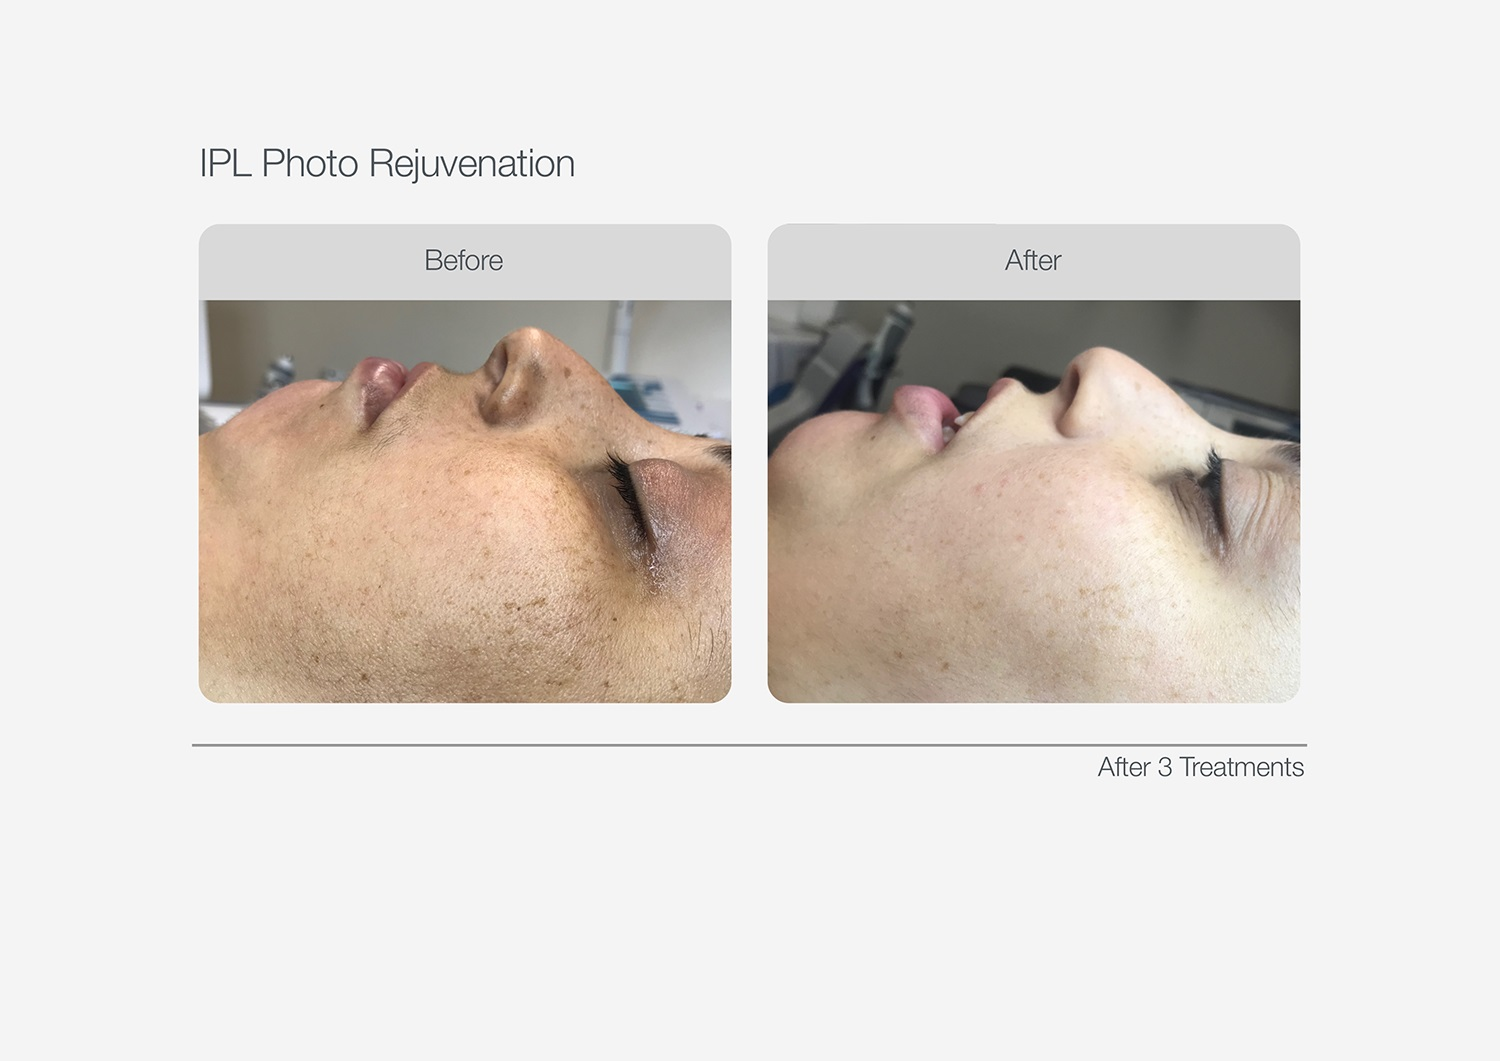 IPL-Photo-Rejuvenation-Before-After-06